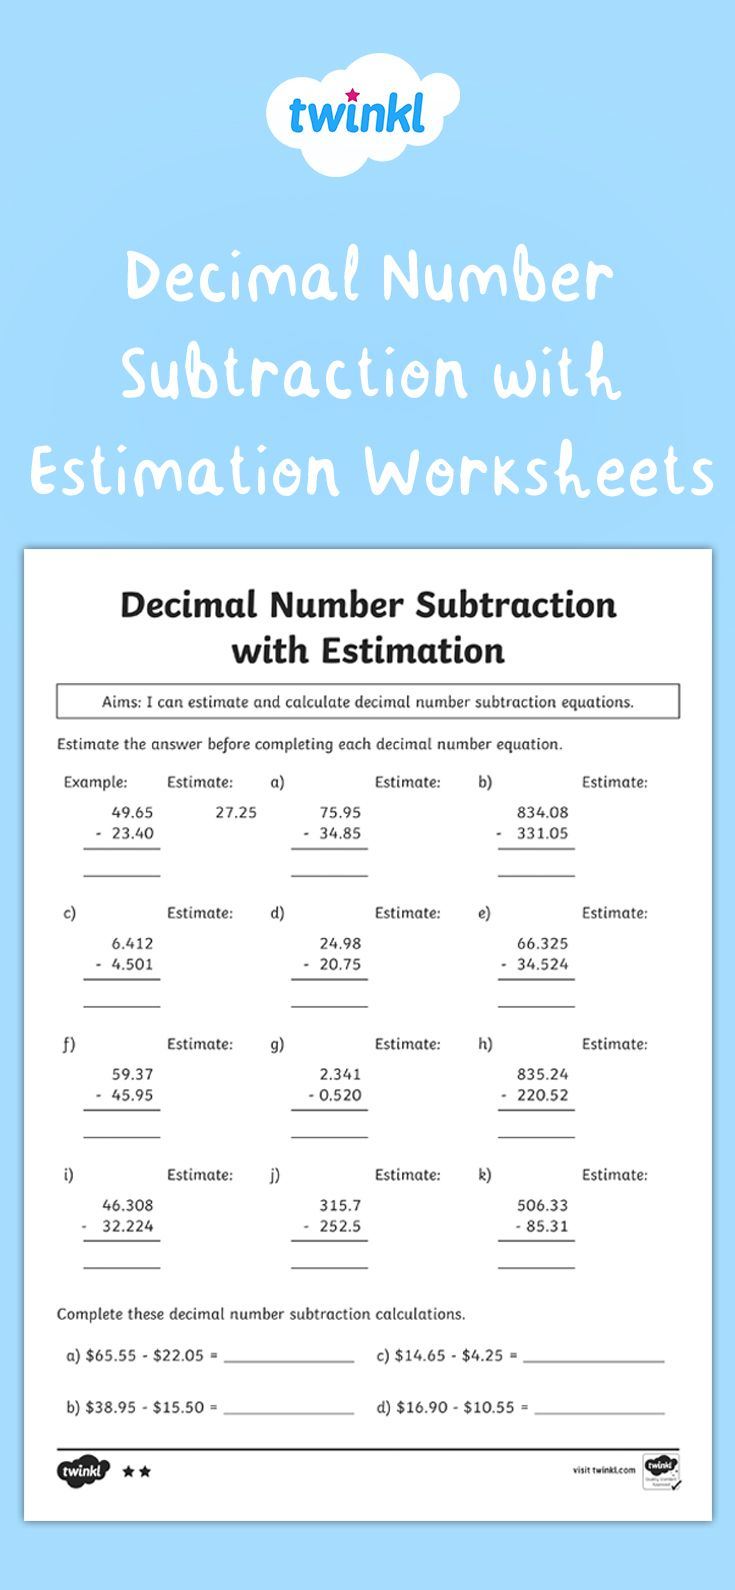 Decimal Number Subtraction With Estimation Differentiated Activity Sheets Decimal Number Subtraction Differentiation Activities [ 1590 x 735 Pixel ]